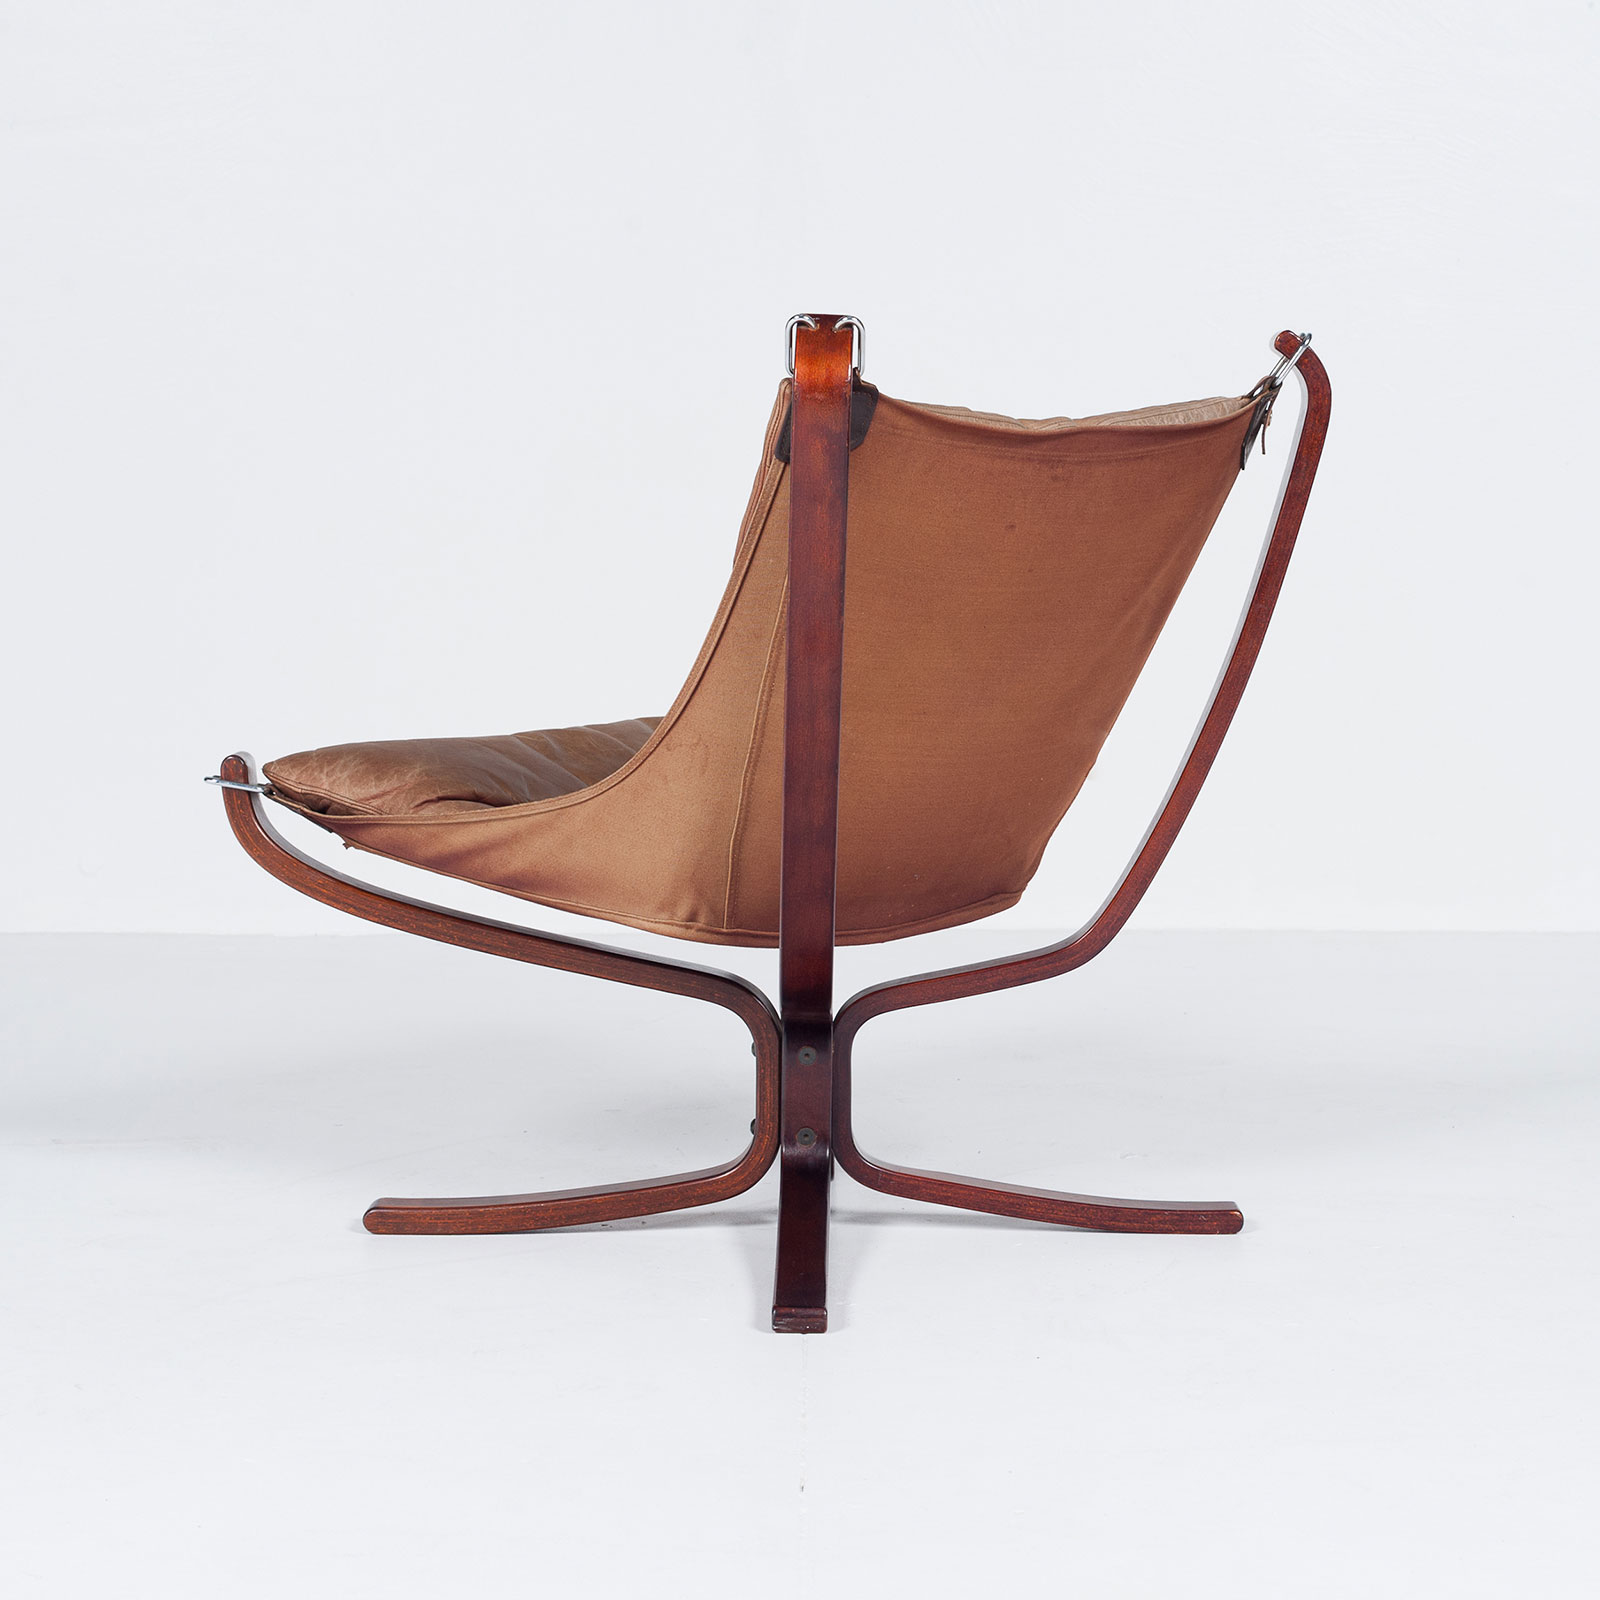 Low Back Falcon Armchair In Tan Leather By Sigurd Ressell For Vatne Mobler, 1971, Norway6707